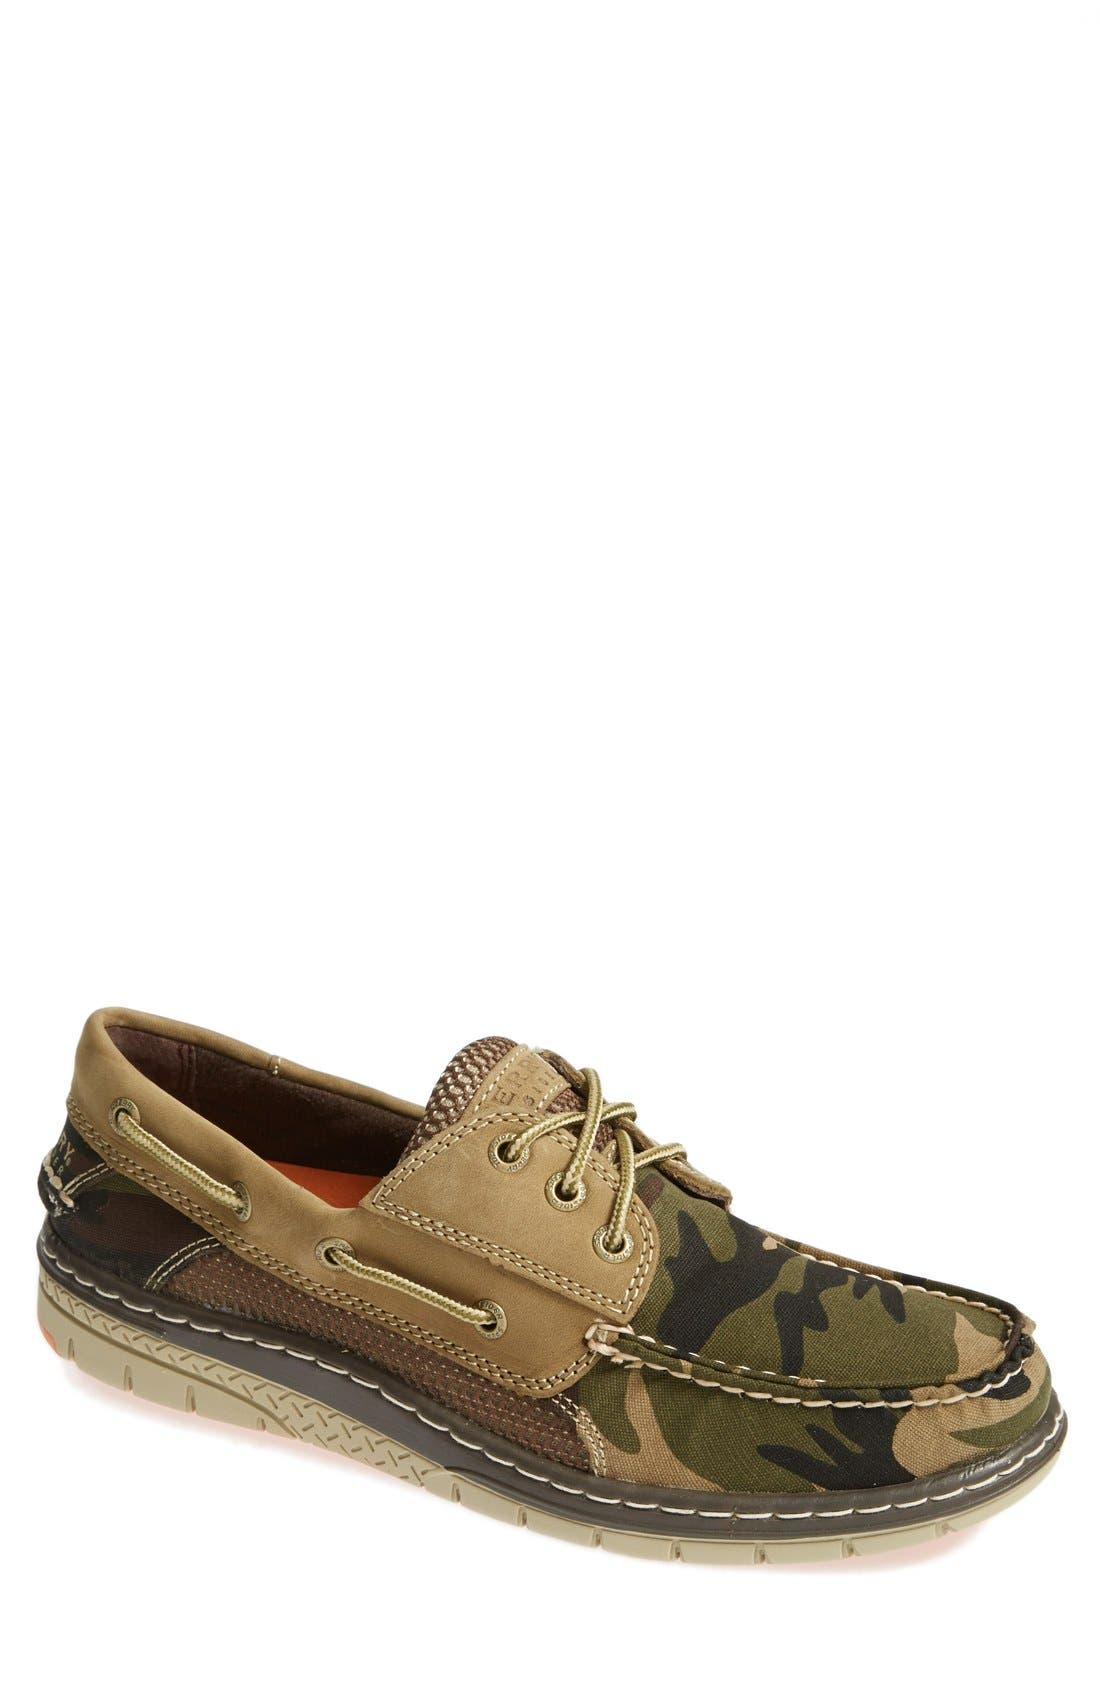 'Billfish Ultralite' Boat Shoe,                             Main thumbnail 16, color,